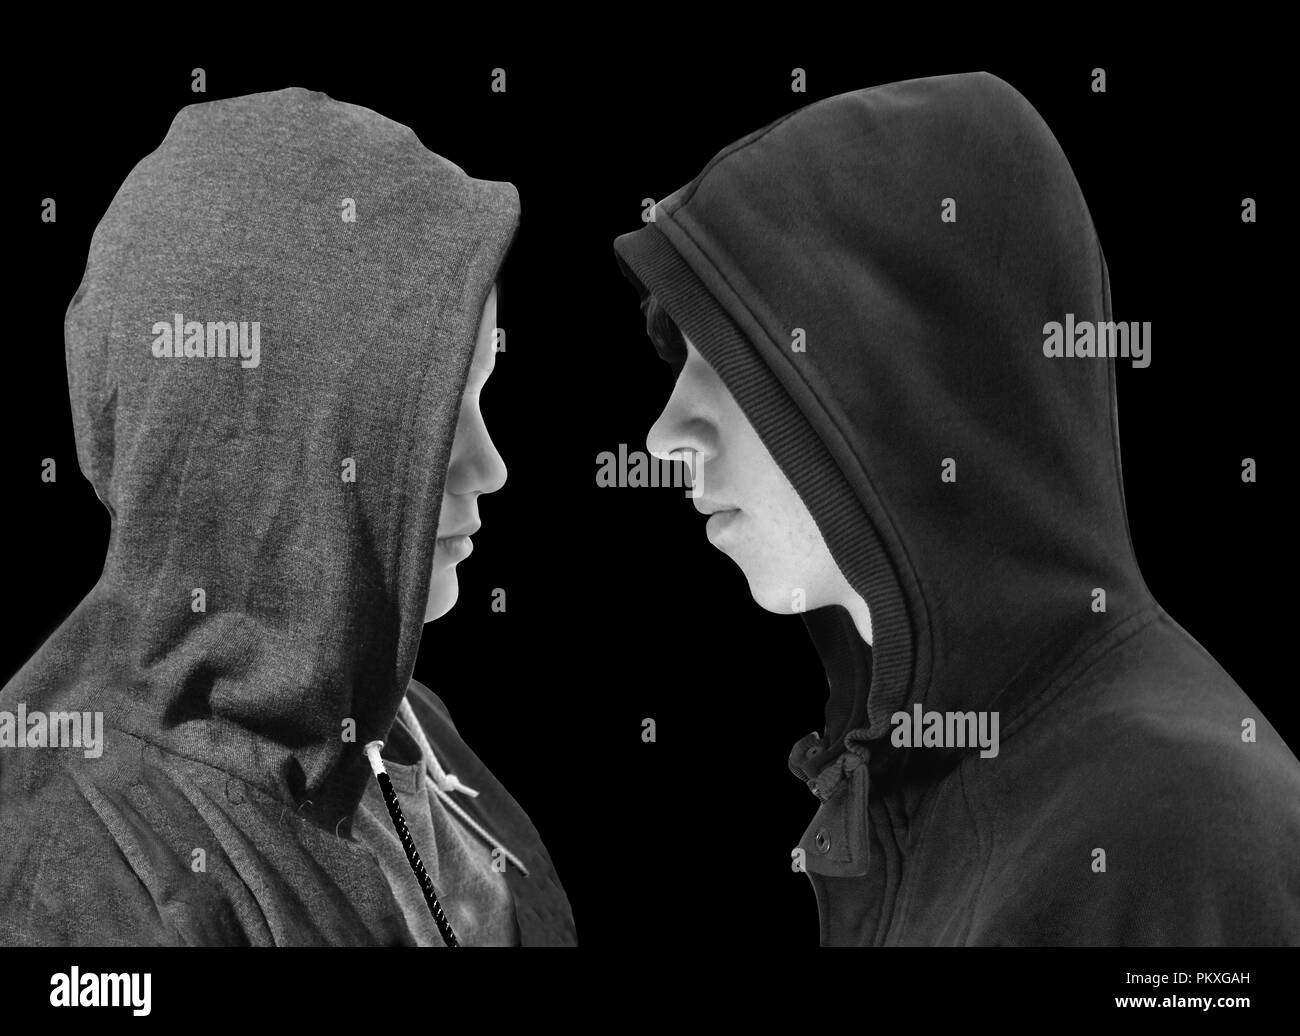 Two troubled teenage boys with black hoodie standing in front of each other in profile isolated on black background. Black and white image. - Stock Image